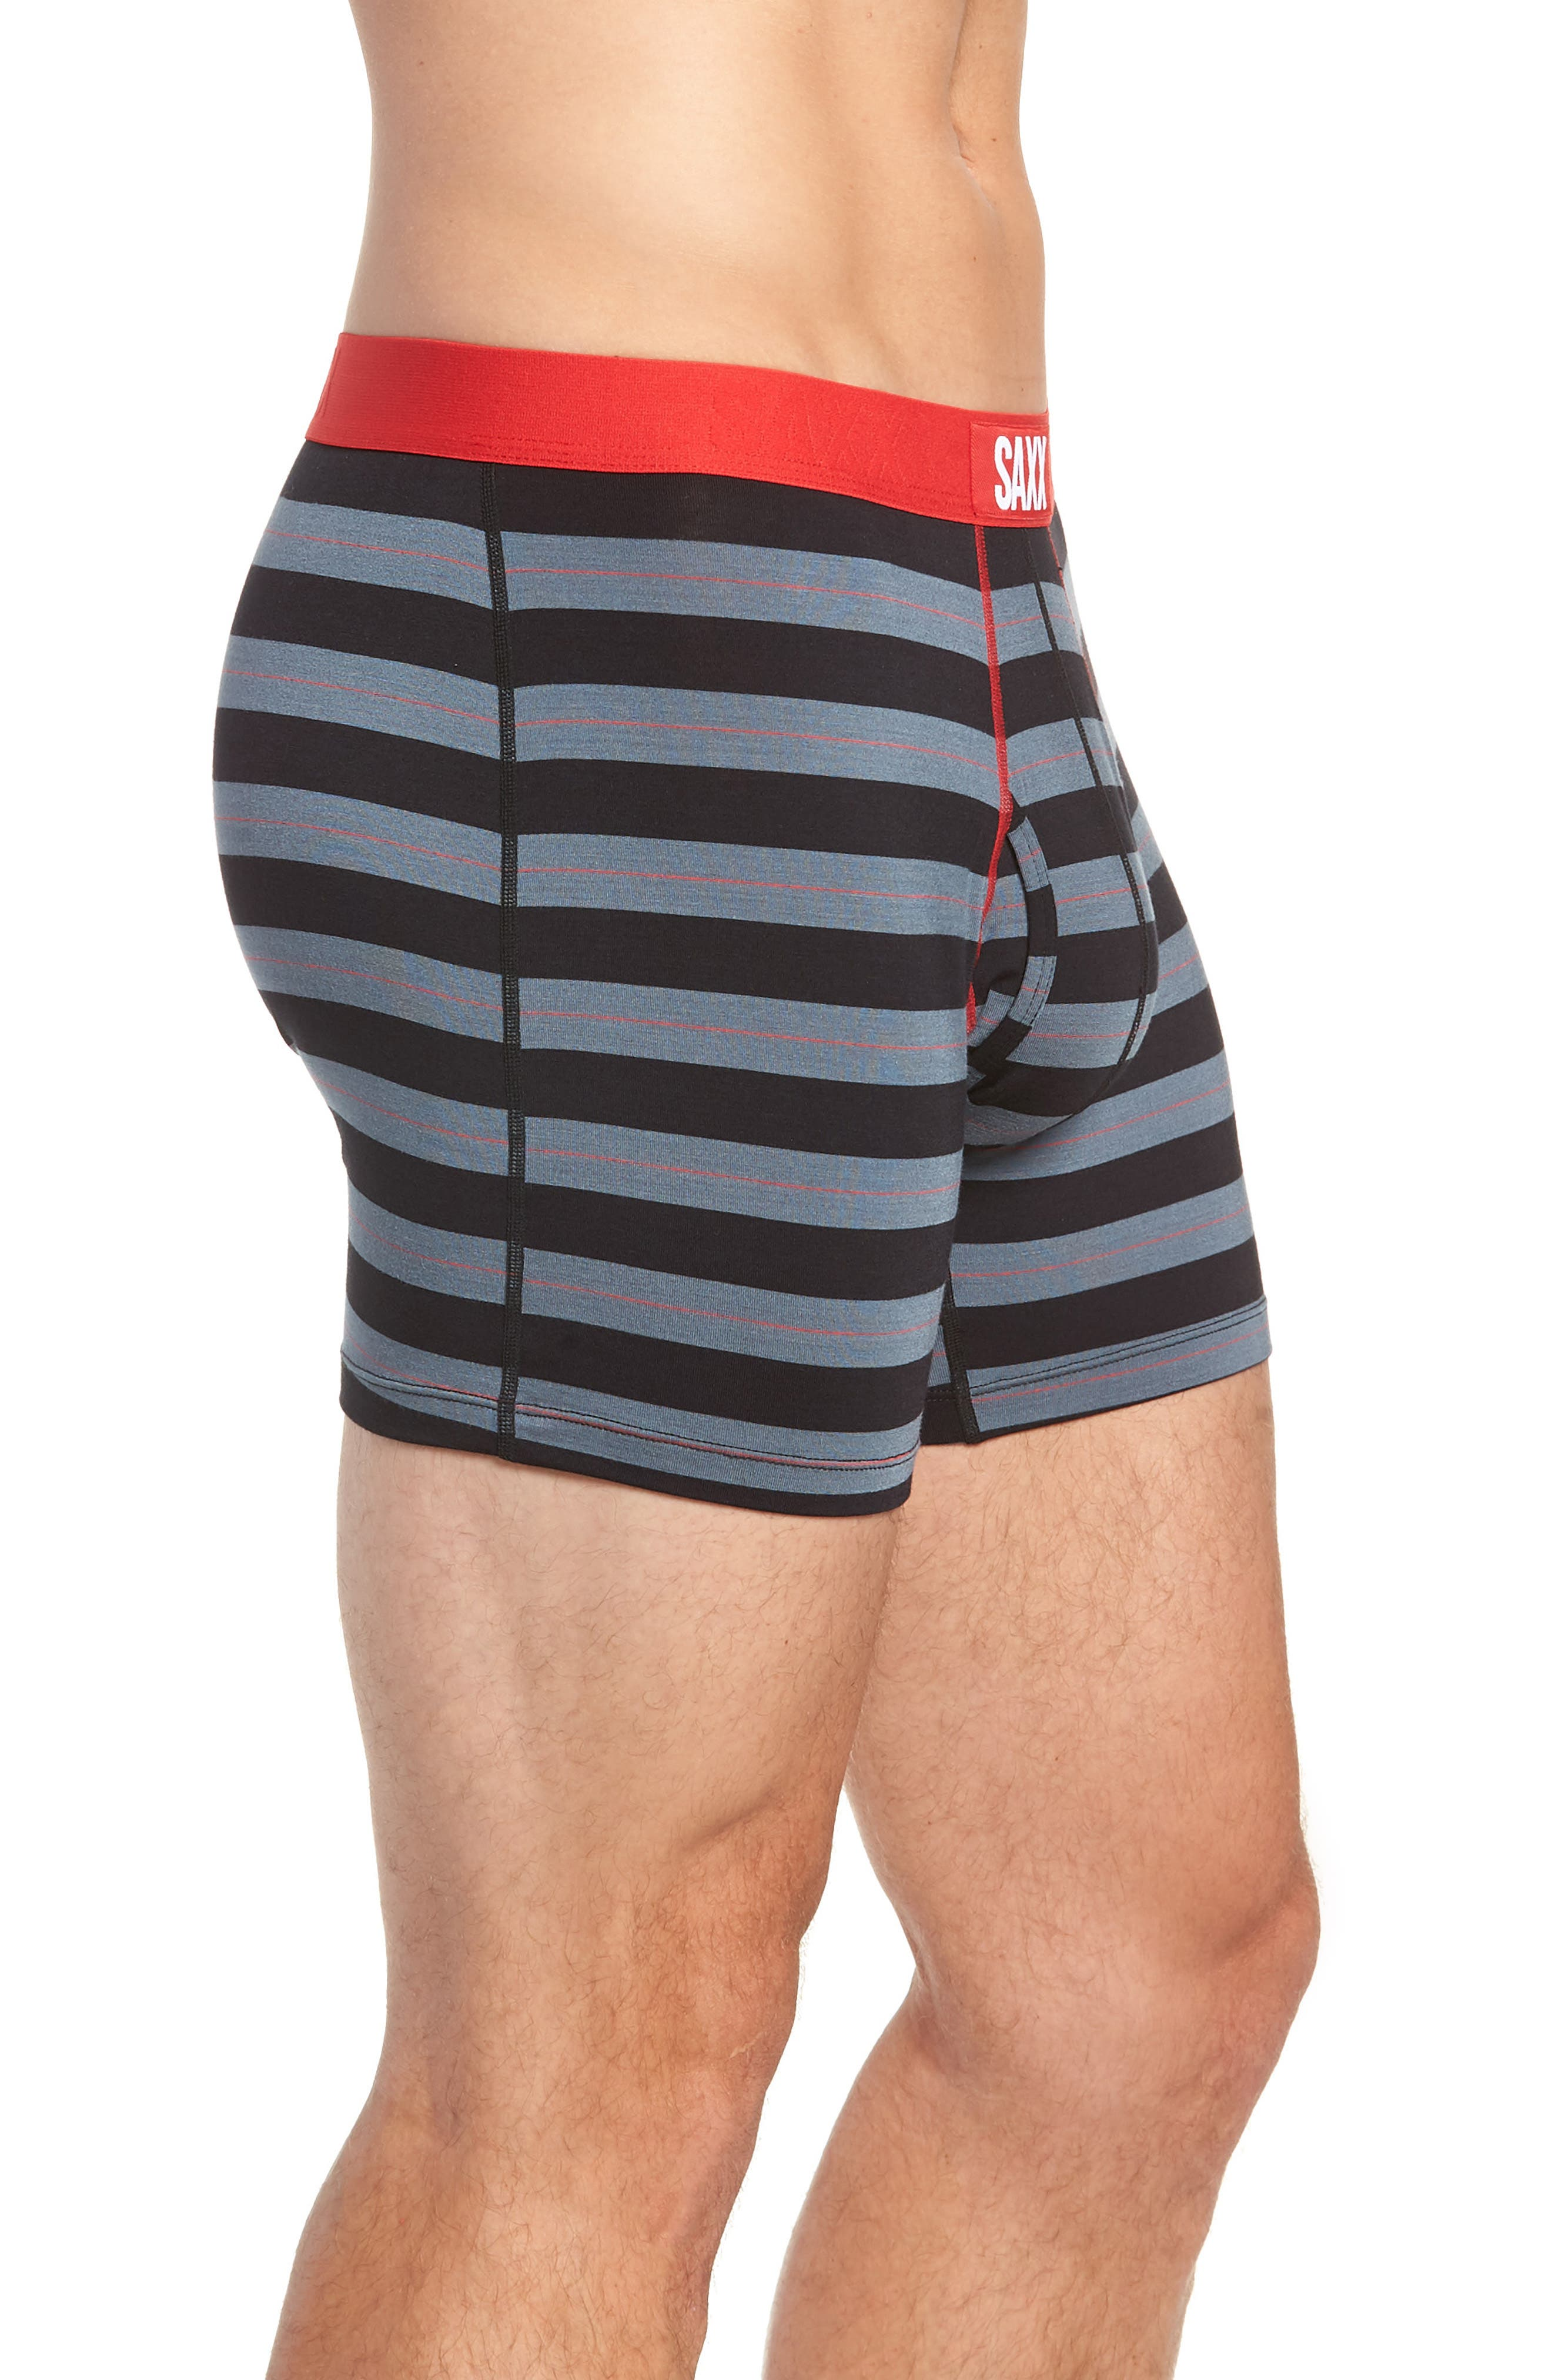 Ultra Holiday 3-Pack Stretch Boxer Briefs,                             Alternate thumbnail 4, color,                             BLACK/ RED MULTI